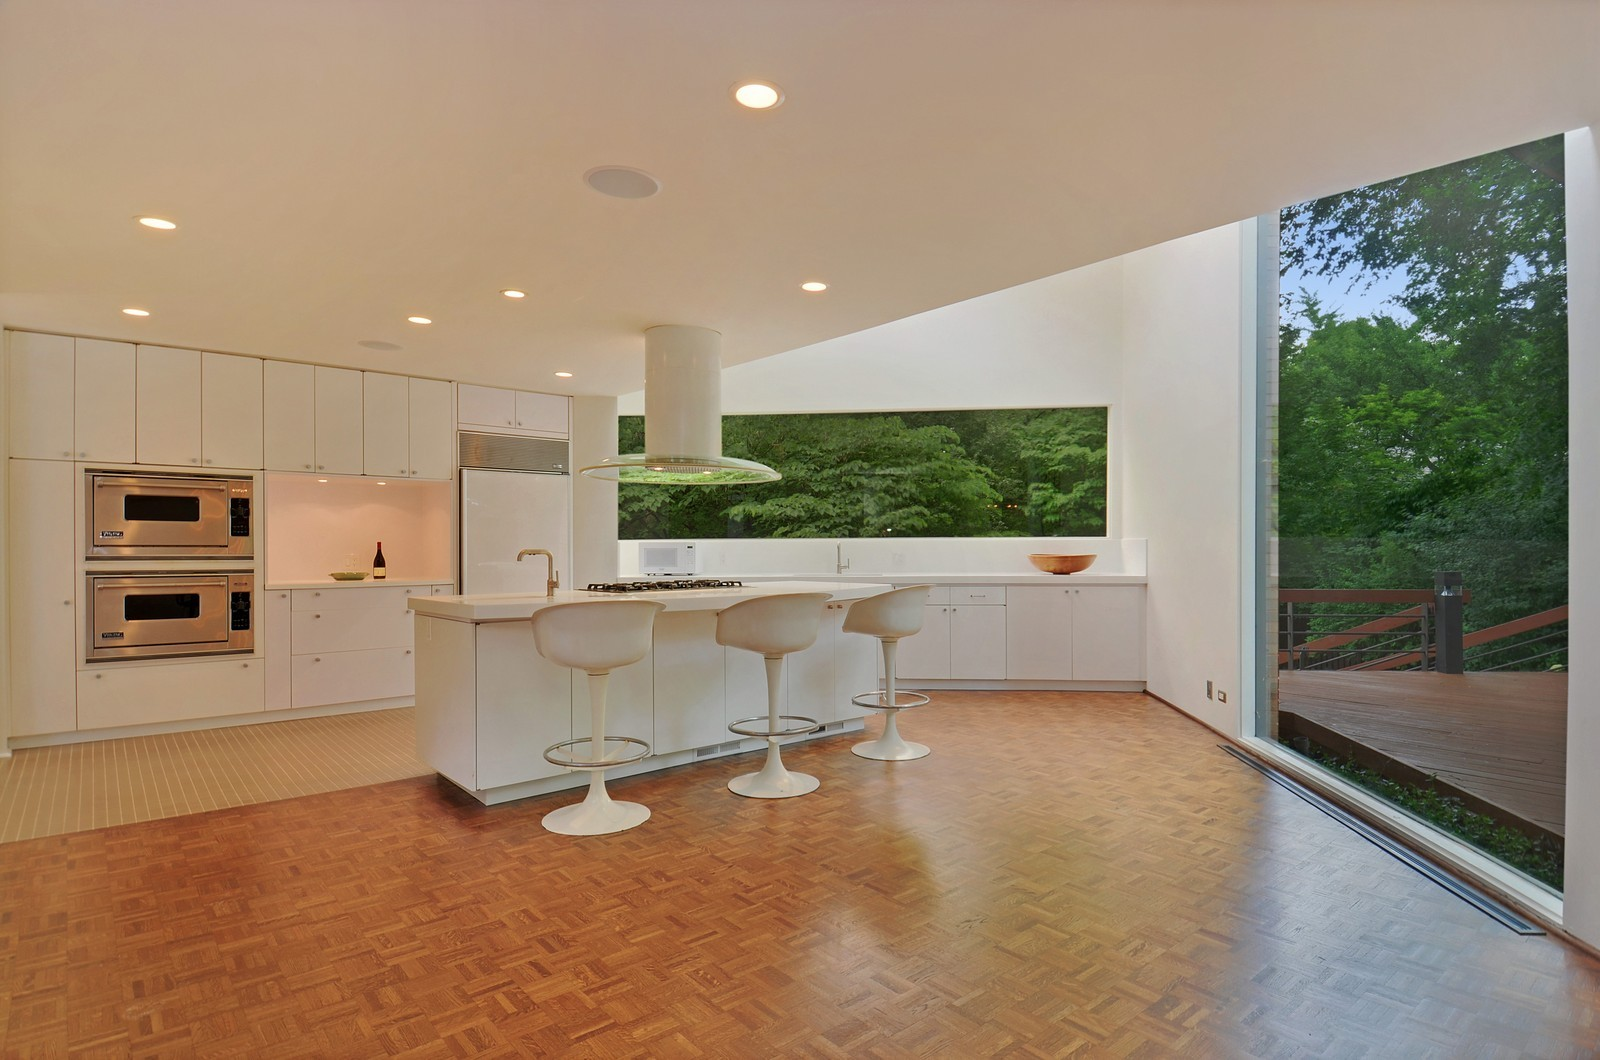 Real Estate Photography - 425 Woodside Ave, Hinsdale, IL, 60521 - Kitchen